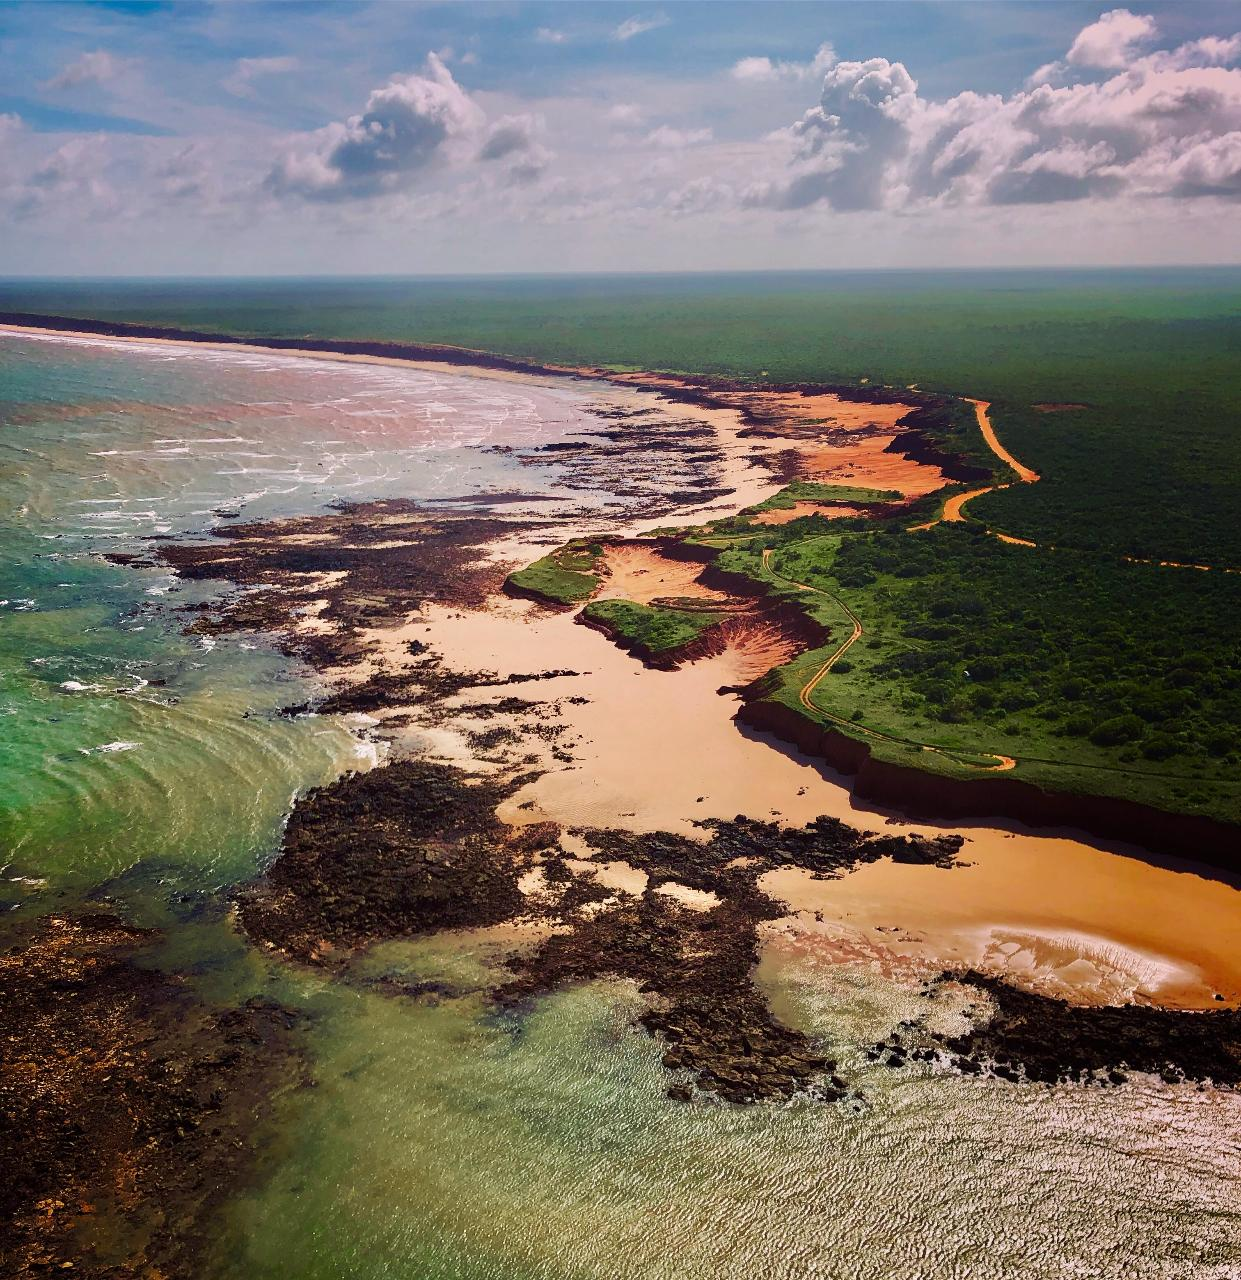 60 minute Broome Cliffs and Coast Scenic Helicopter Flight